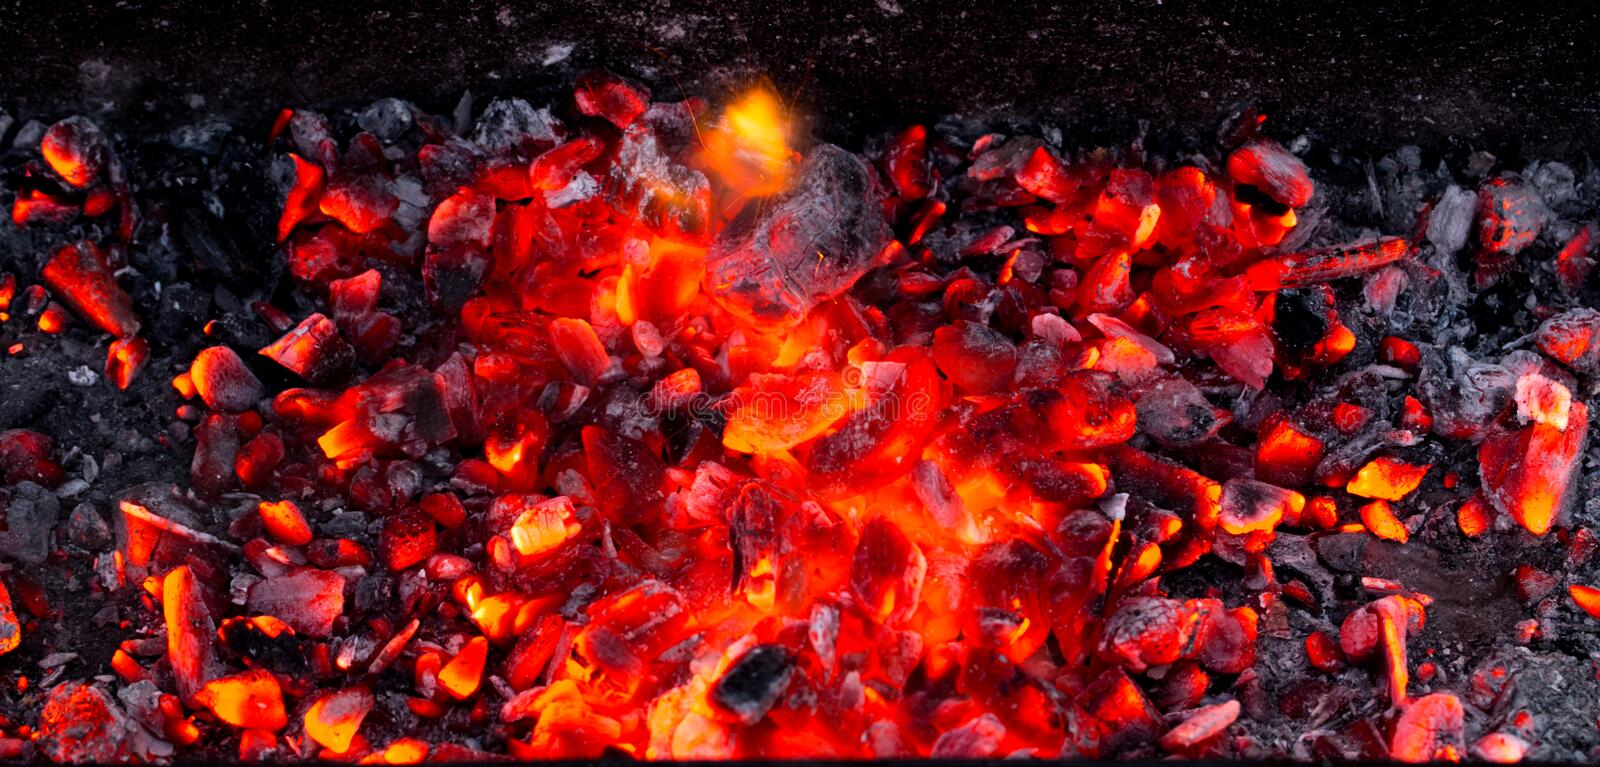 Burning charcoal as background royalty free stock photos